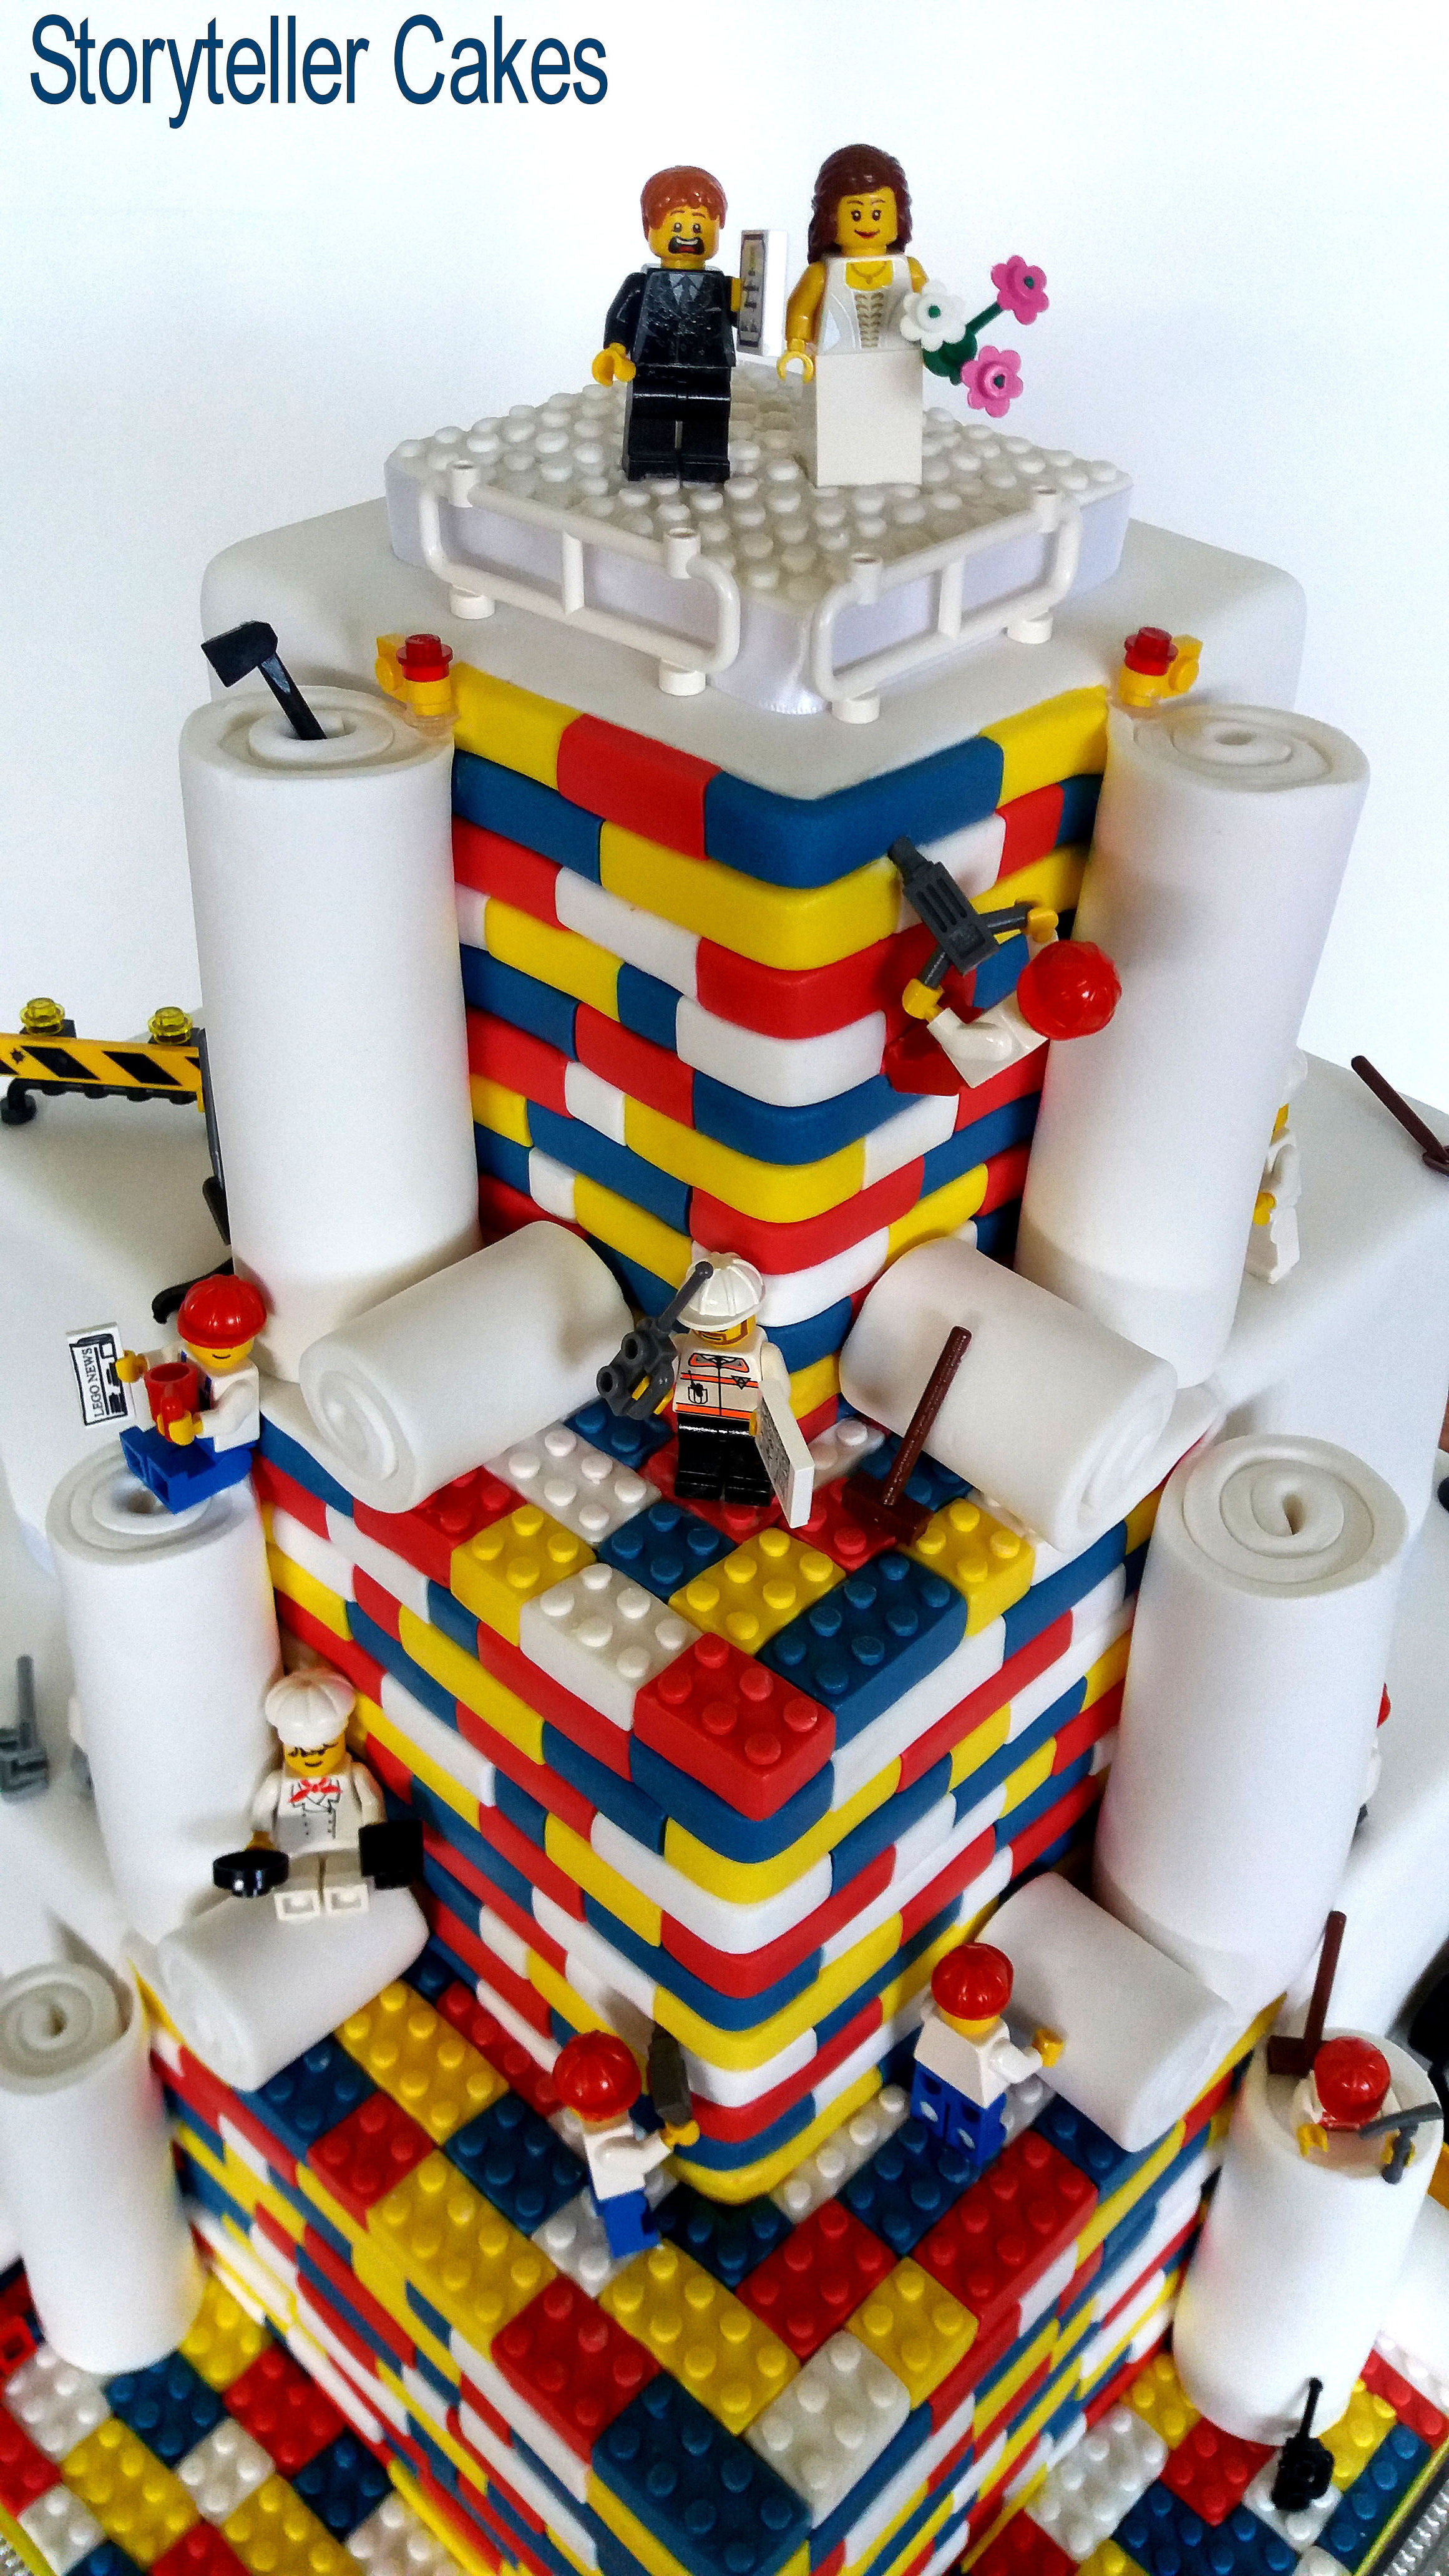 Lego Wedding Cake 2.jpg